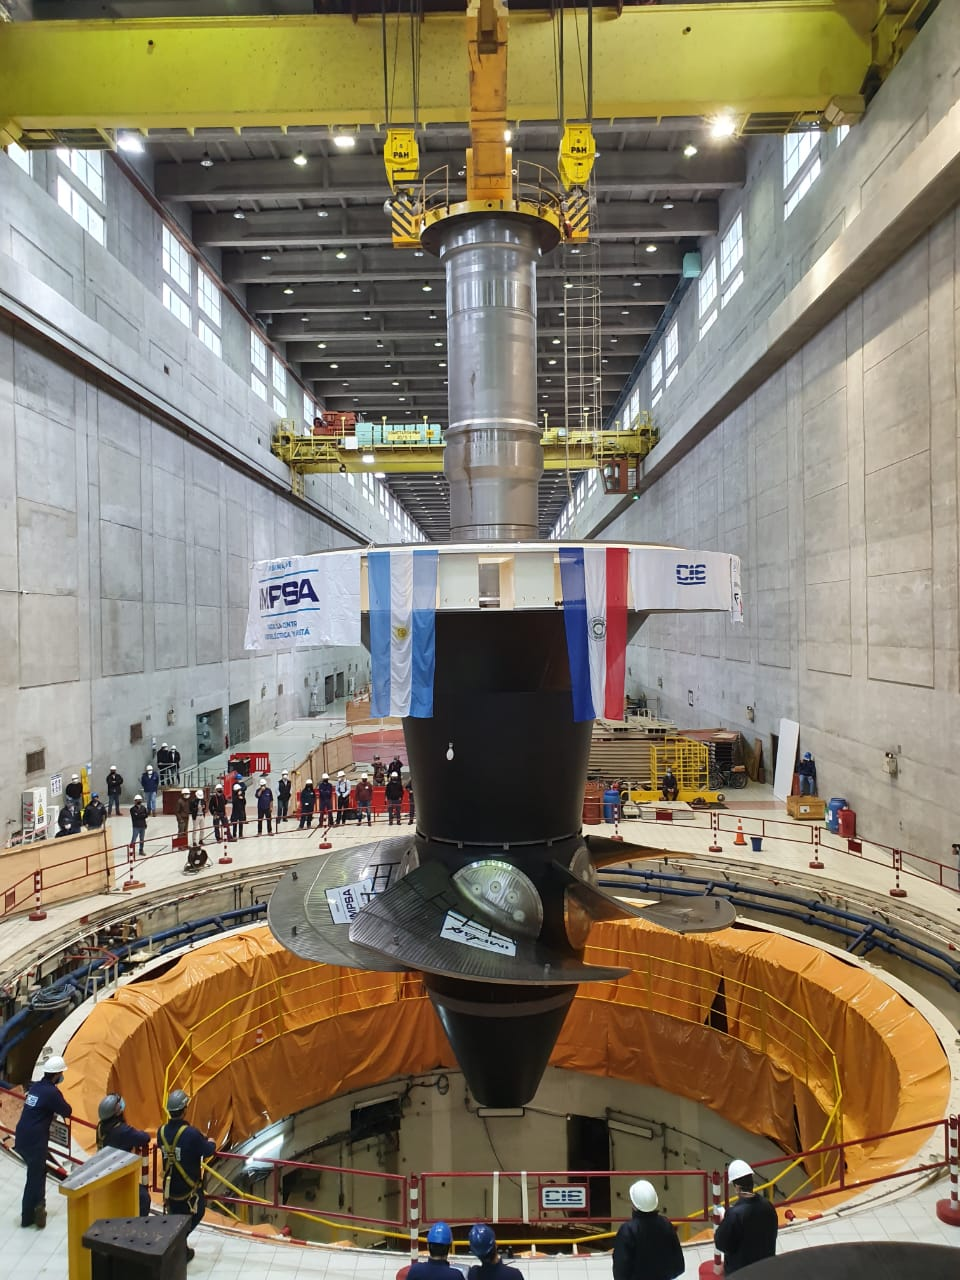 New turbine installed in Unit 01 of the Yacyretá Hydroelectric Power Plant